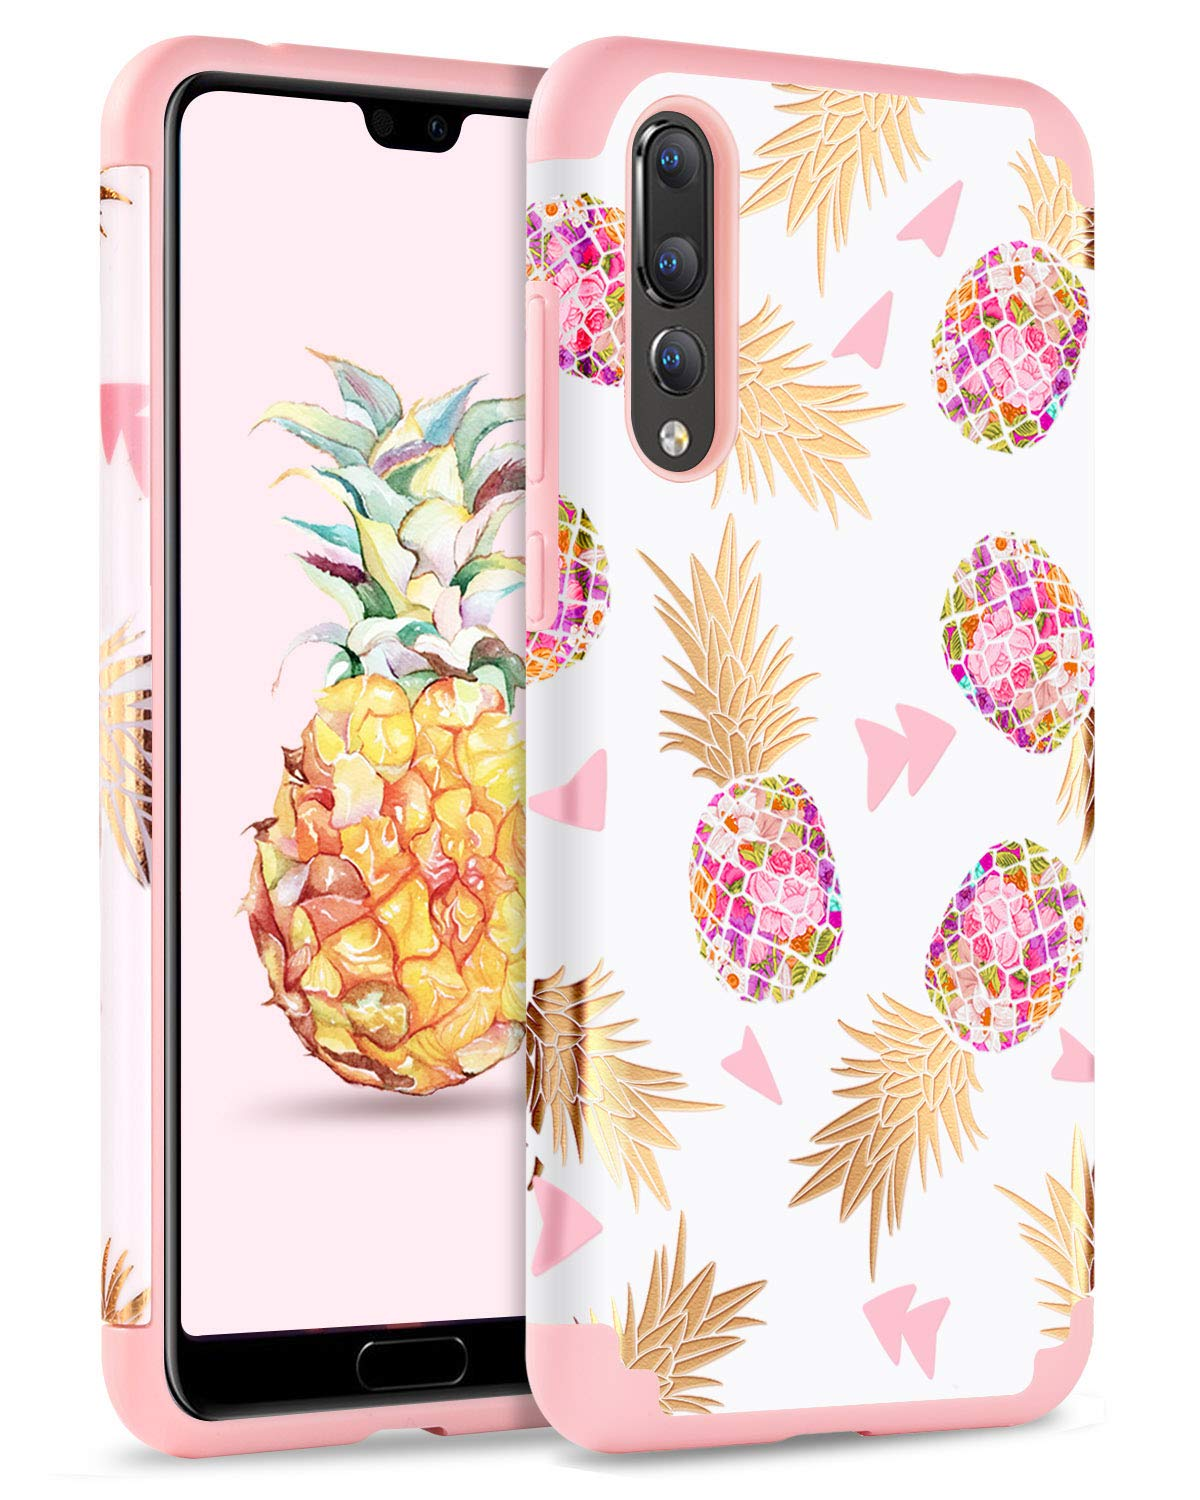 Case for Huawei P20 Pro, BENTOBEN Cute Pineapple Phone Huawei P20 Pro Case, Dual Layer Full Body Protective Phone Case for Girls & Women, 2 in 1 Shockproof Slim Hybrid Hard PC and Silicone Cover for Huawei P20 Pro, Gray